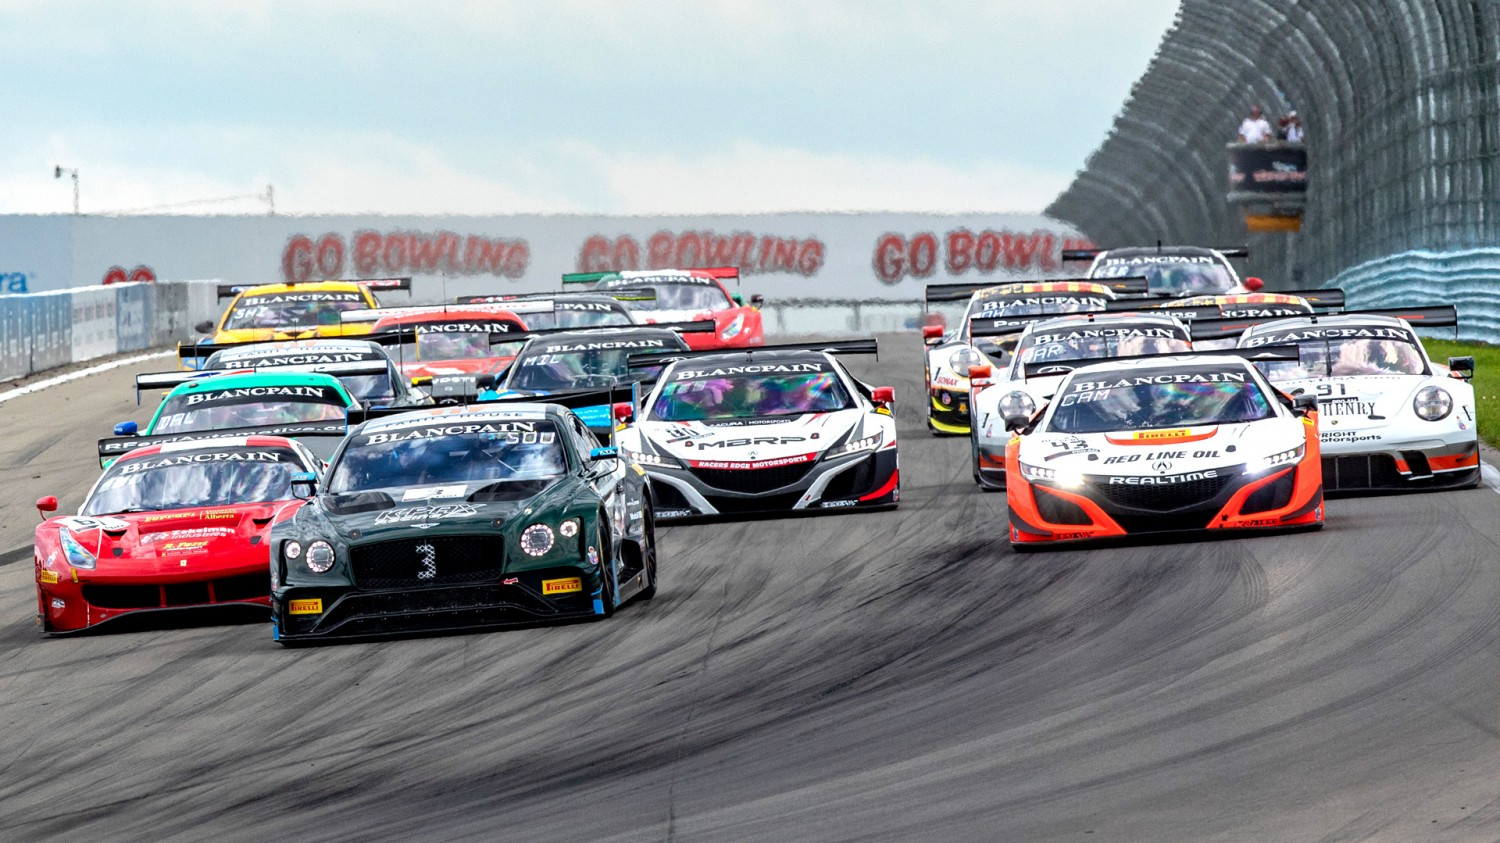 Bentley, Ferrari Set to Face Off Again as Blancpain GT World Challenge America Heads to Road America